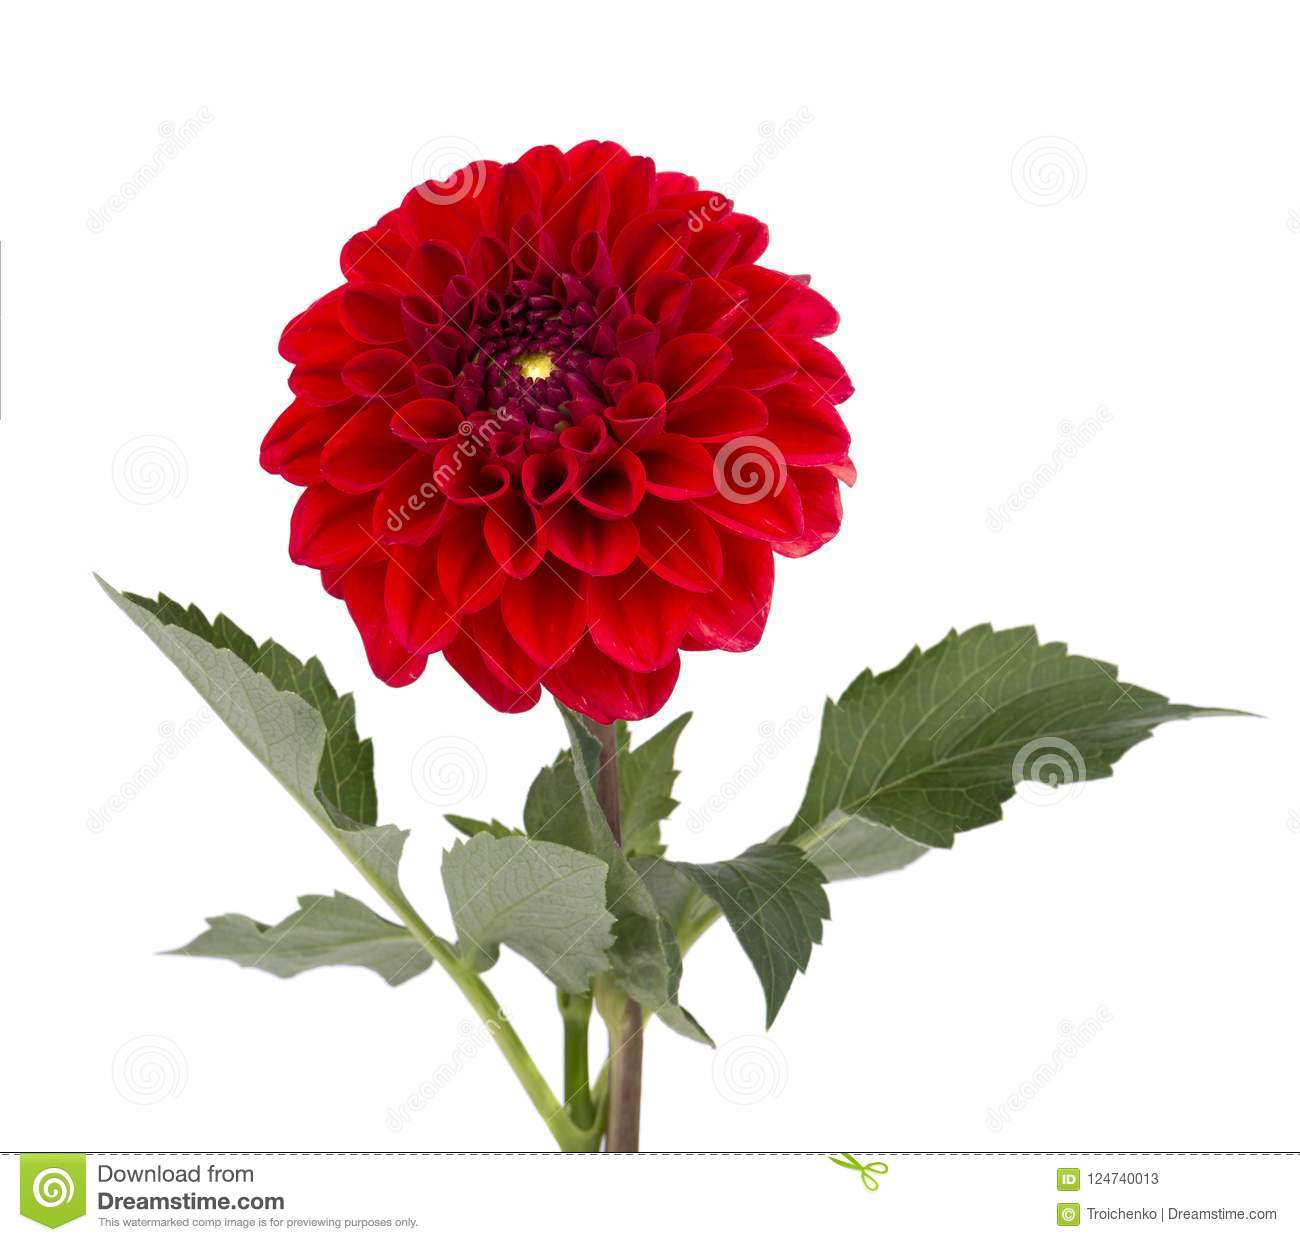 Burgundy dahlia flower with leaves isolated on white background download burgundy dahlia flower with leaves isolated on white background stock image image of leaf izmirmasajfo